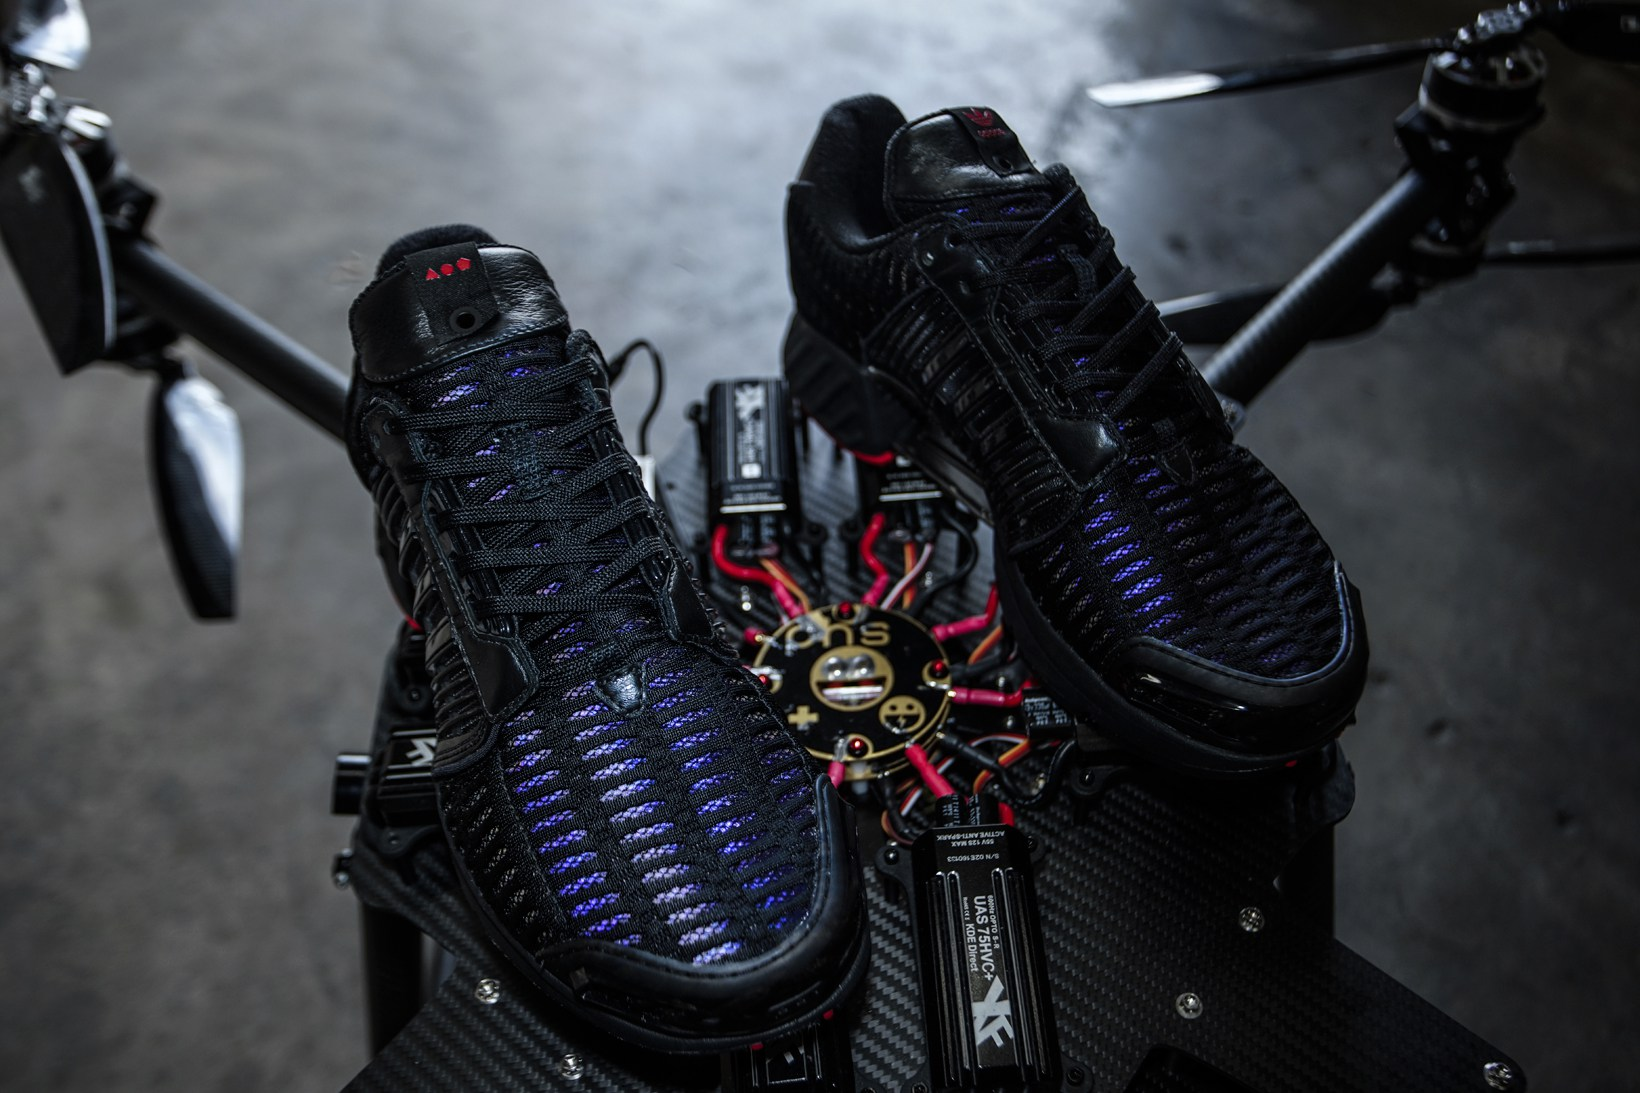 shoe-gallery-x-adidas-climacool-1-flight-305-2